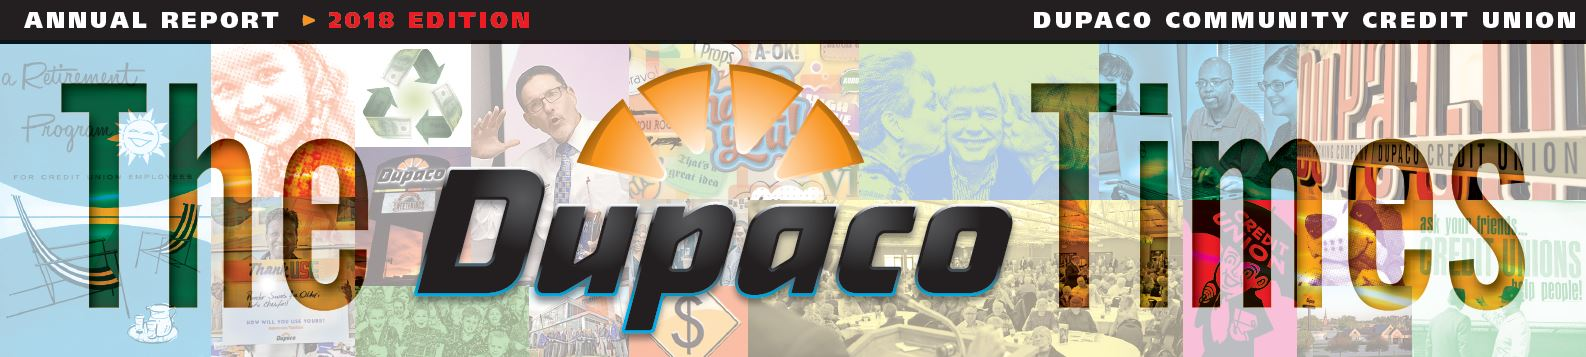 The Dupaco Times | Annual Report | 2018 Edition